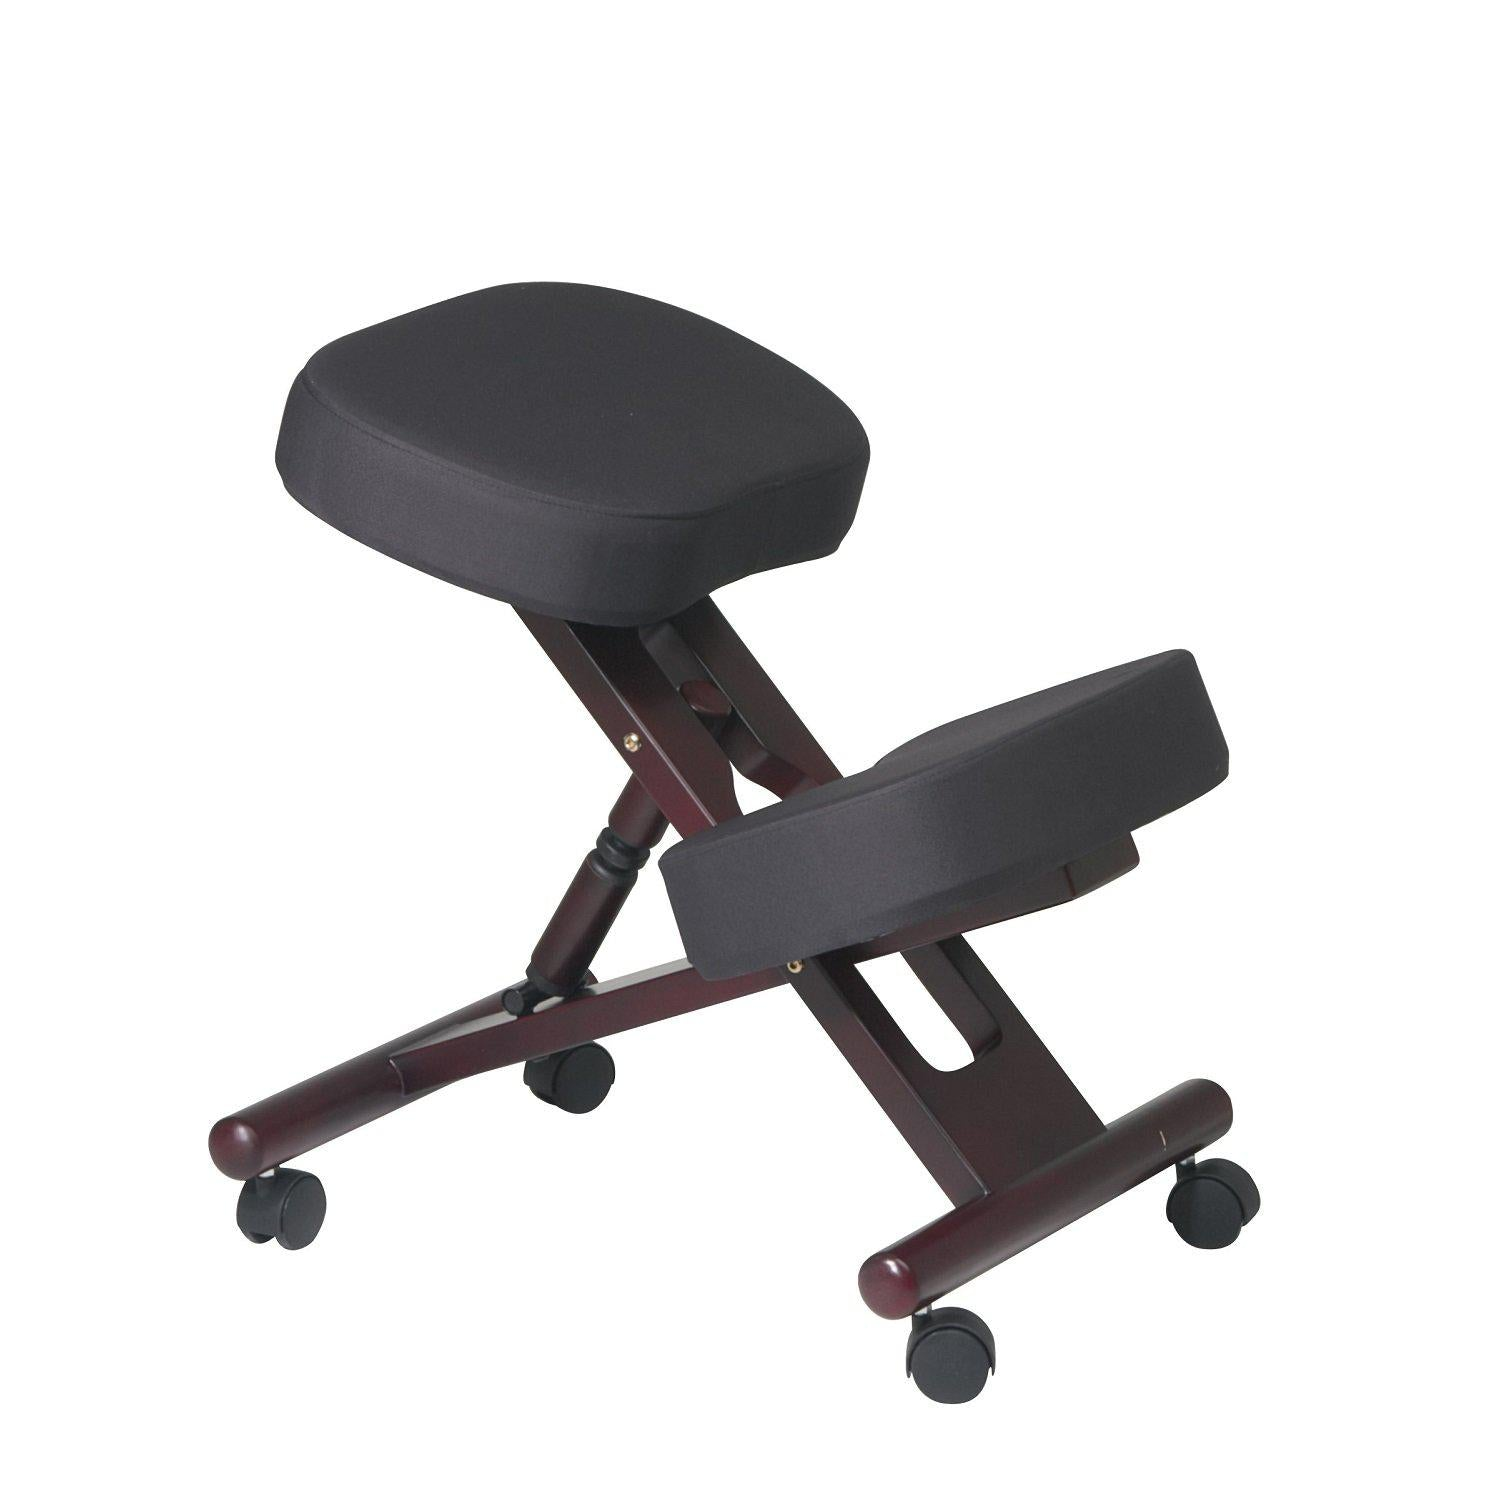 Ergonomically Designed Wood Knee Chair with Casters and Memory Foam